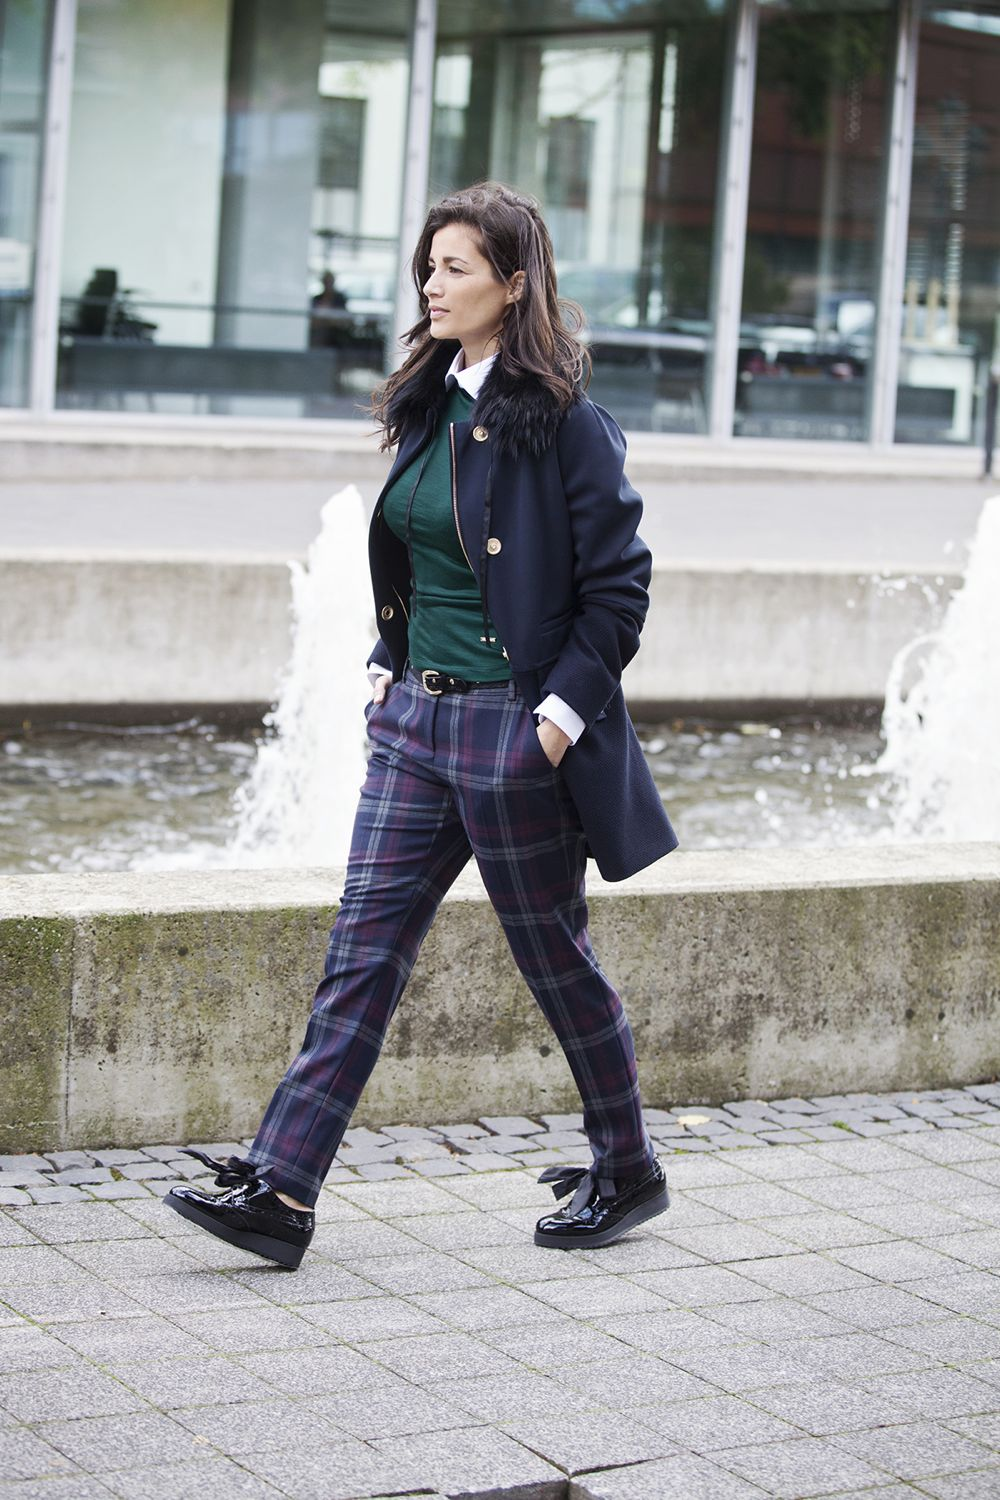 streetfashion fall 2014 plaid trousers brogues BlogForShops